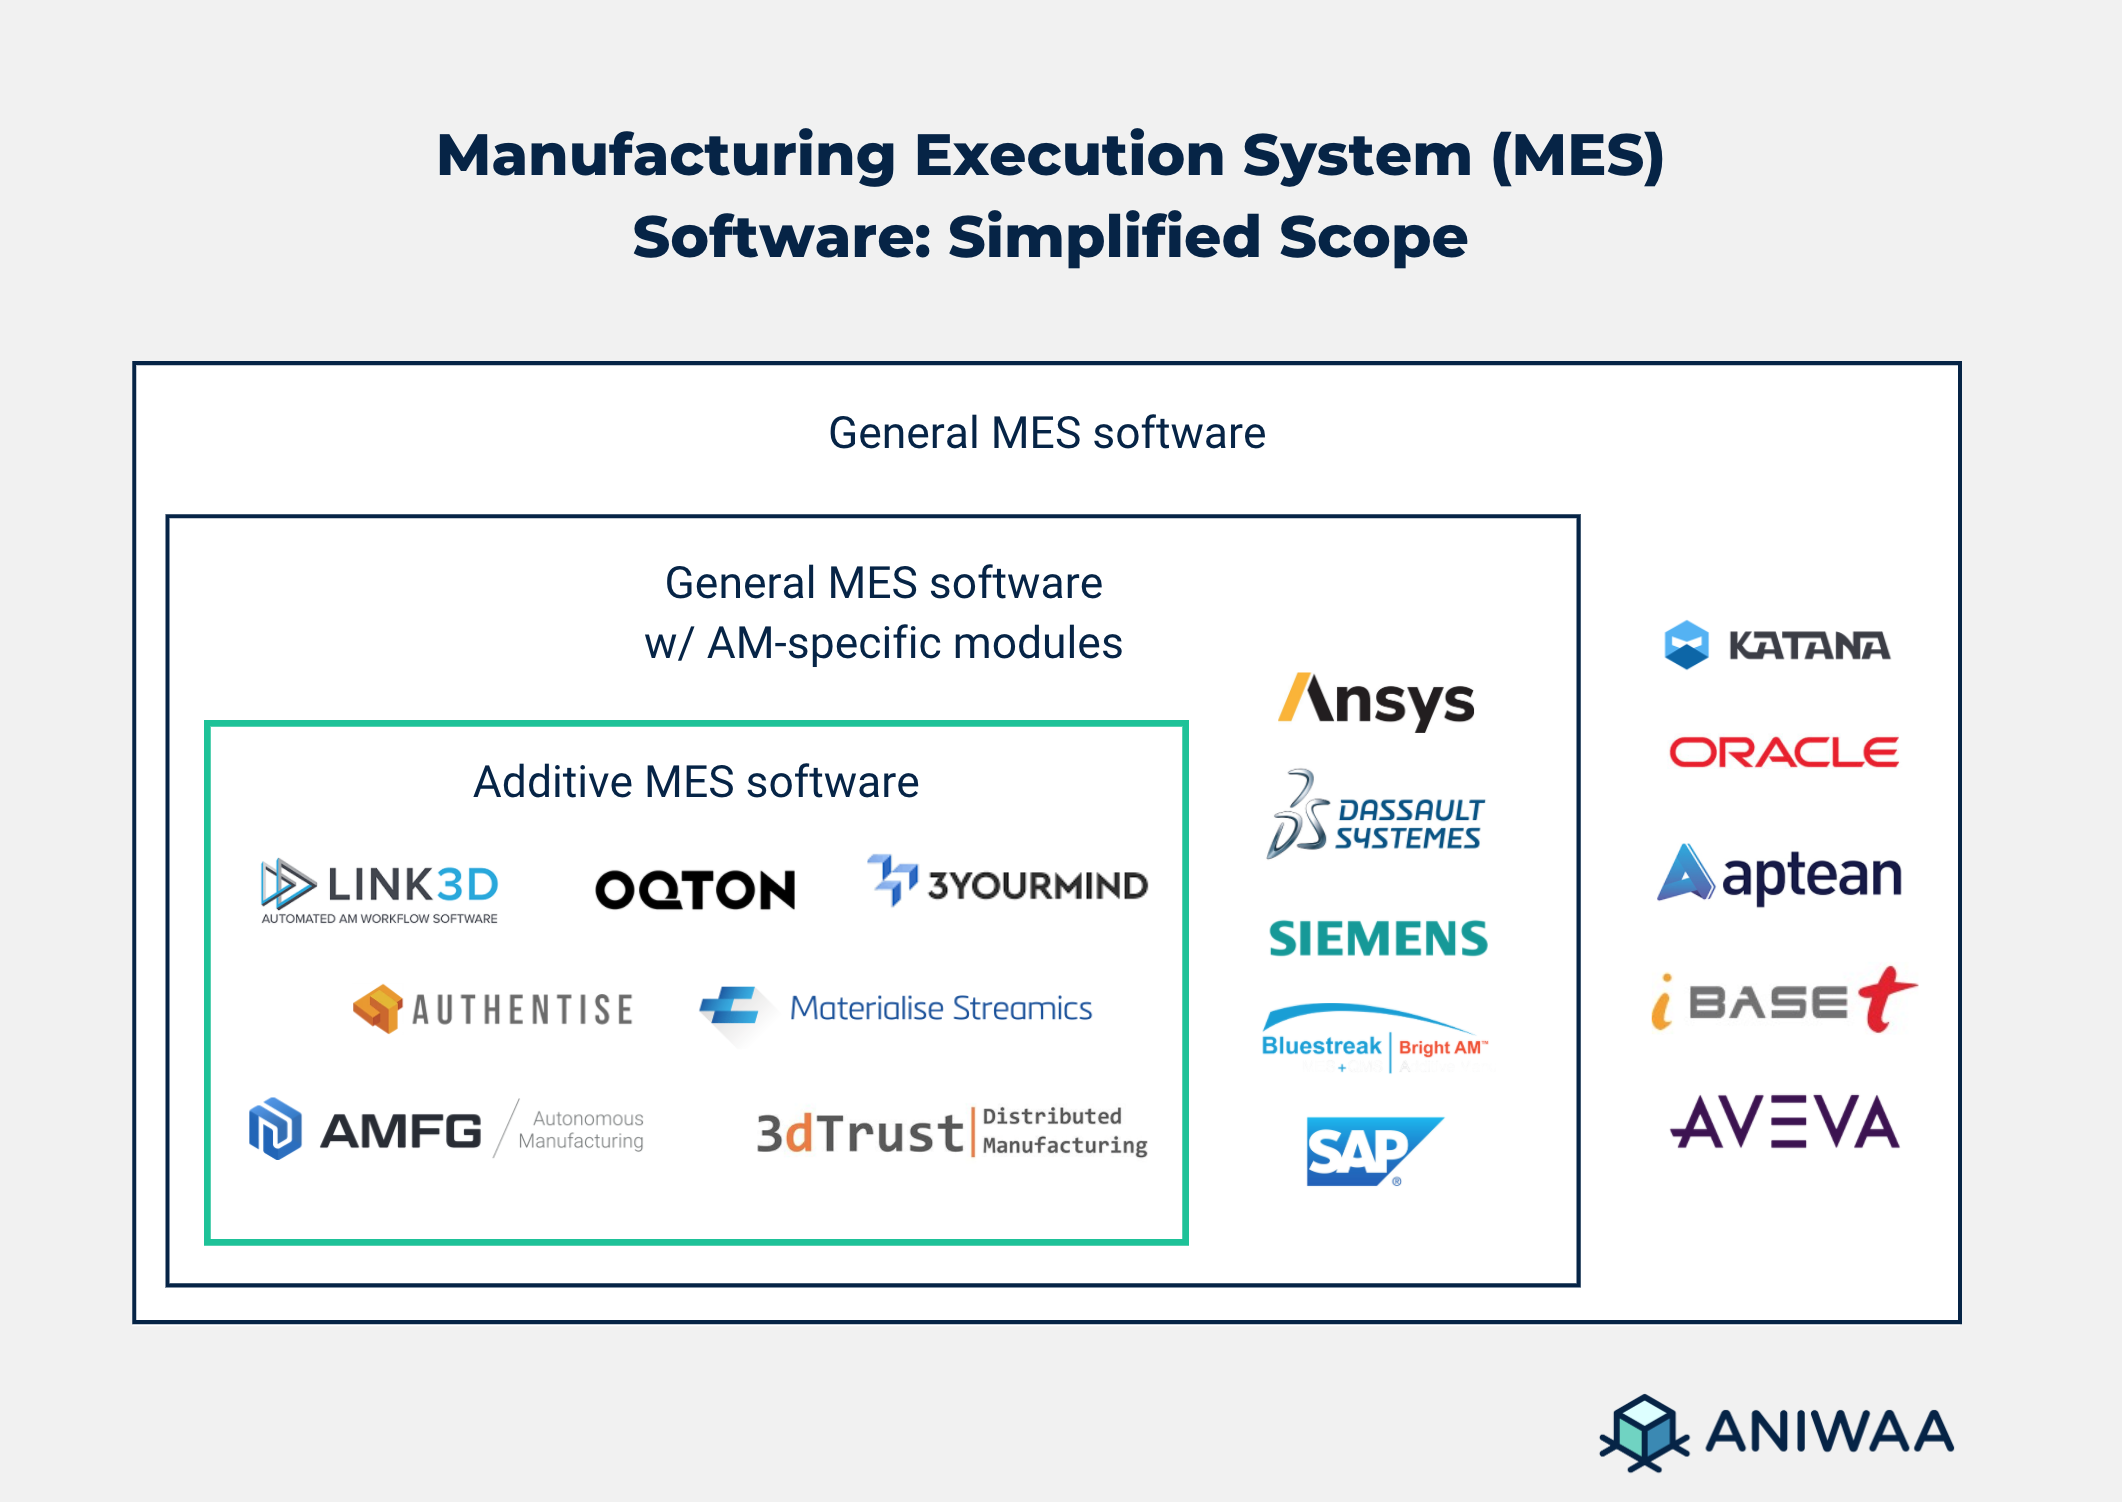 MES and Additive MES Software scope